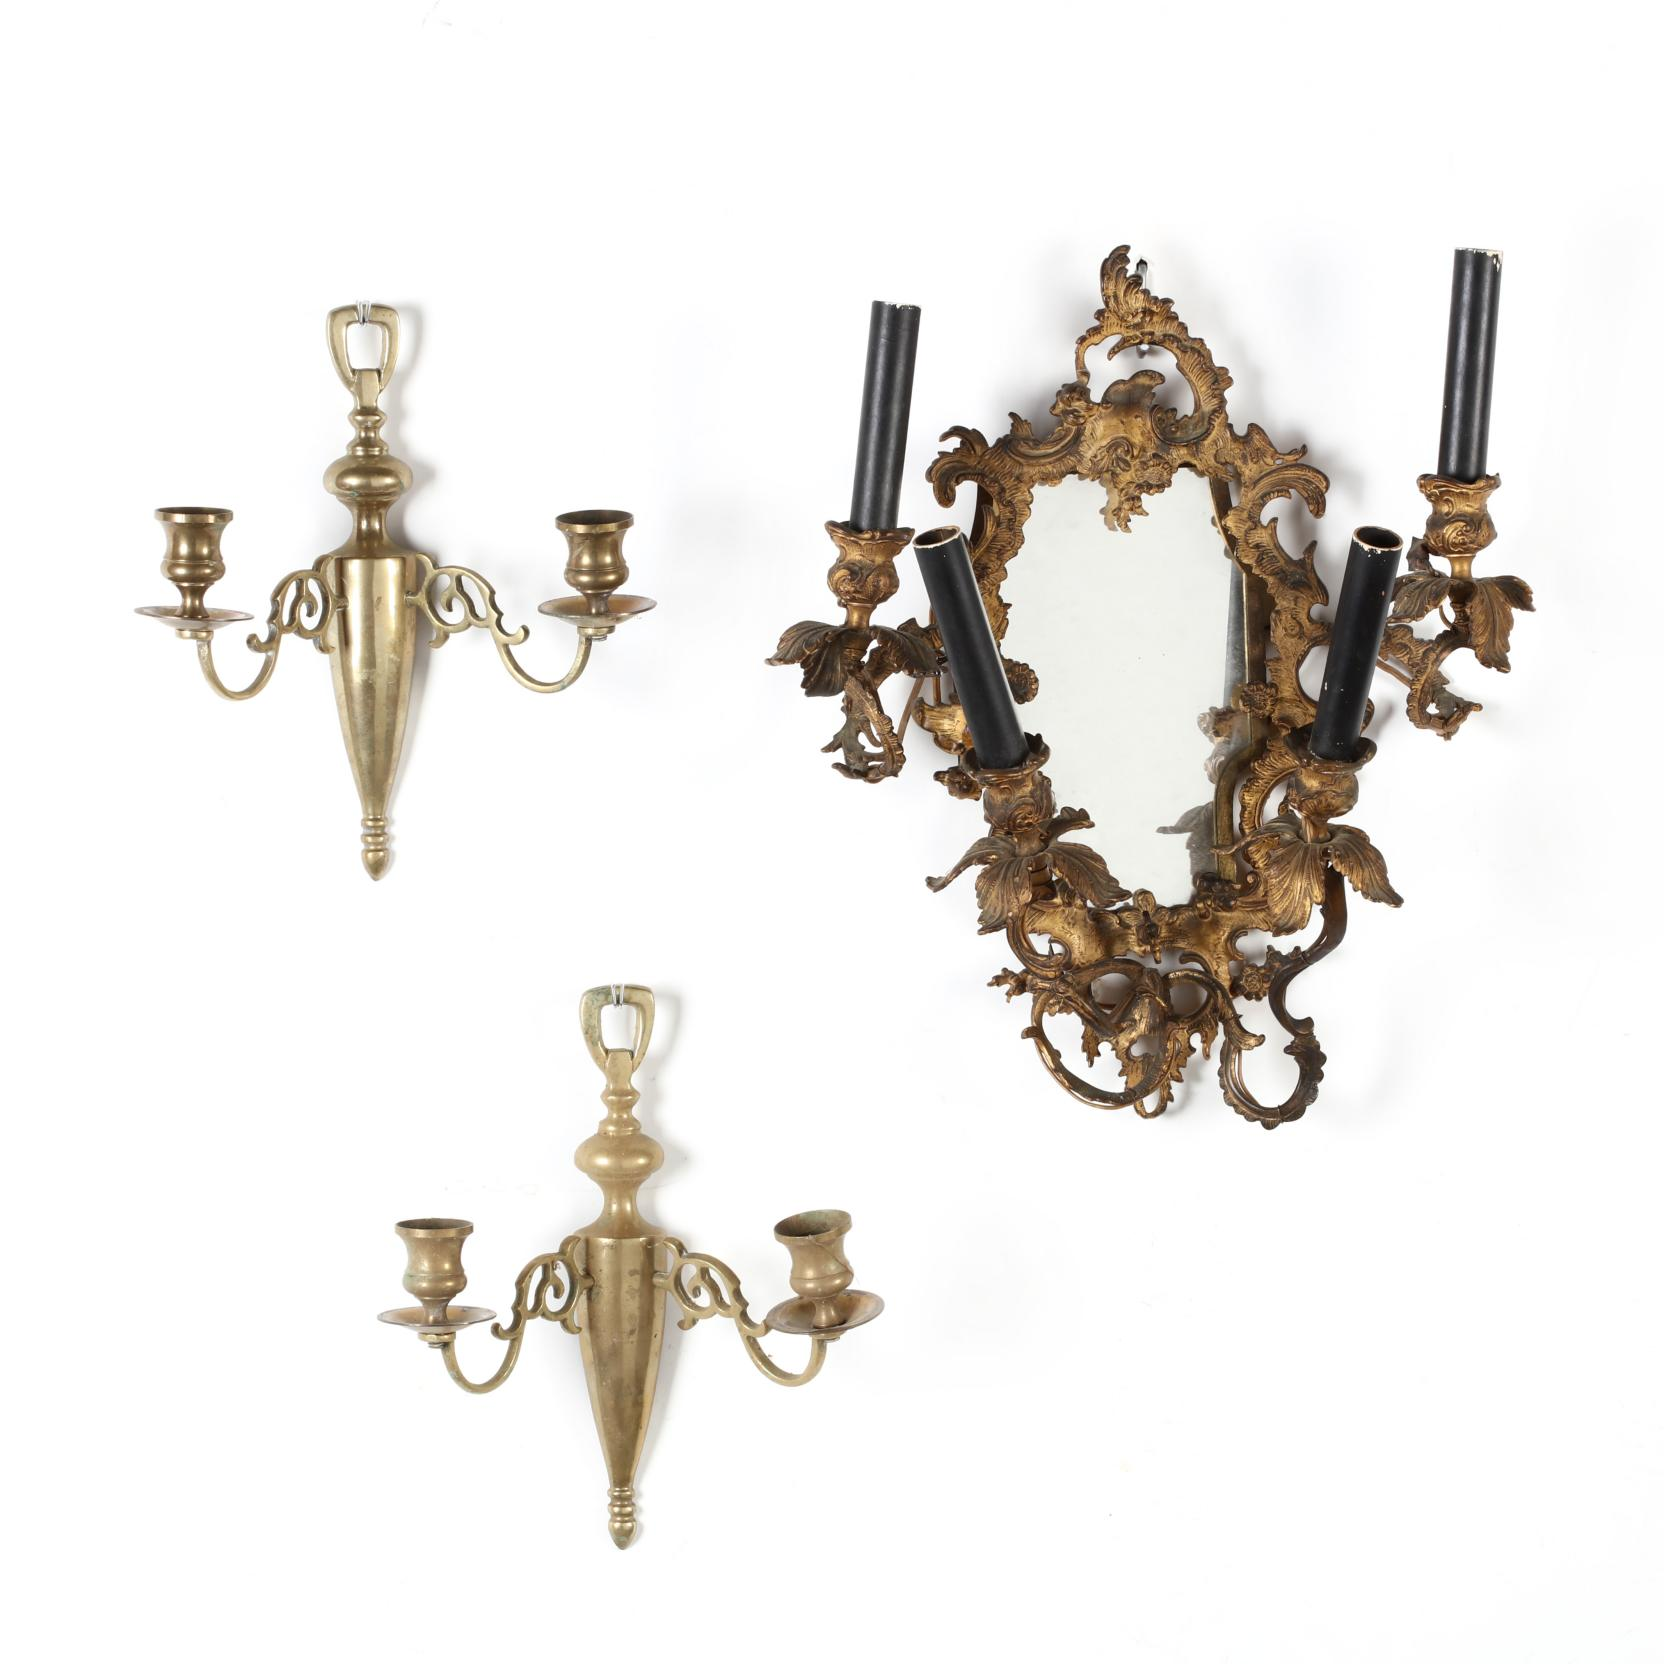 three-vintage-wall-sconces